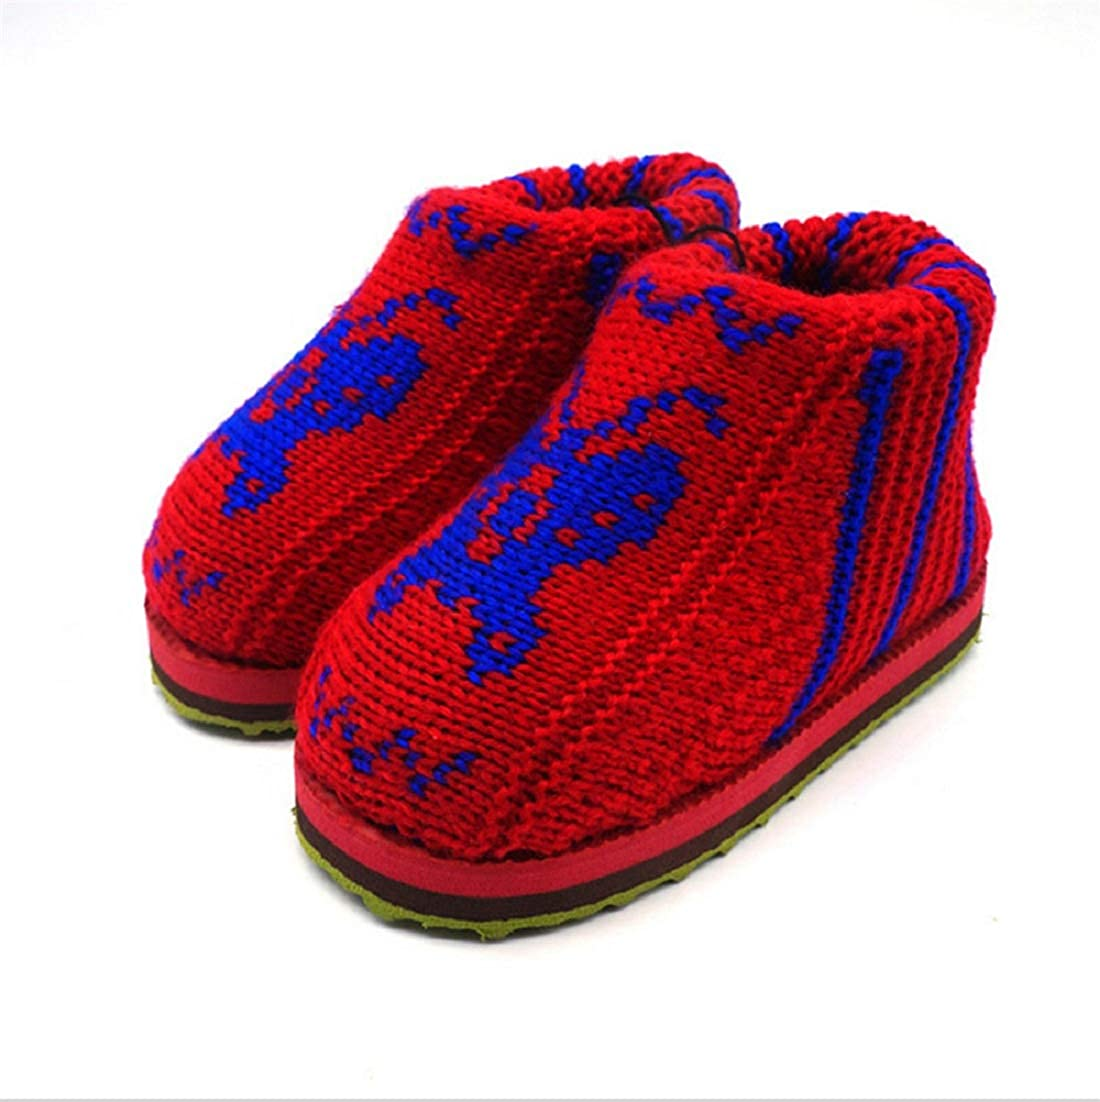 11//11.5//12-US, red Autumn and Winter New Handmade Woolen Cotton Shoes Baby Girls Boys Warm Winter Anti-Skid Slip-on Indoor Warm Cotton Shoes Random Pattern